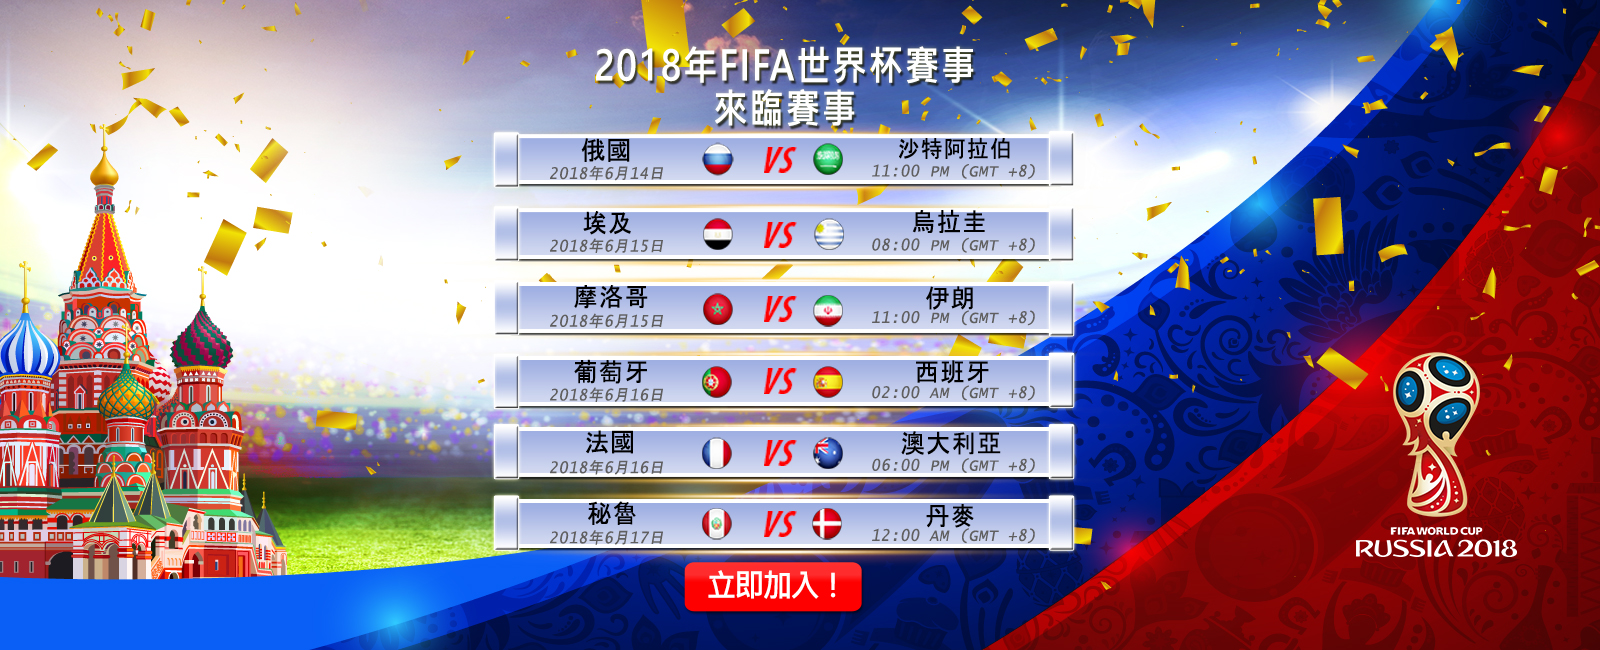 World Cup 2018 Upcoming Matches